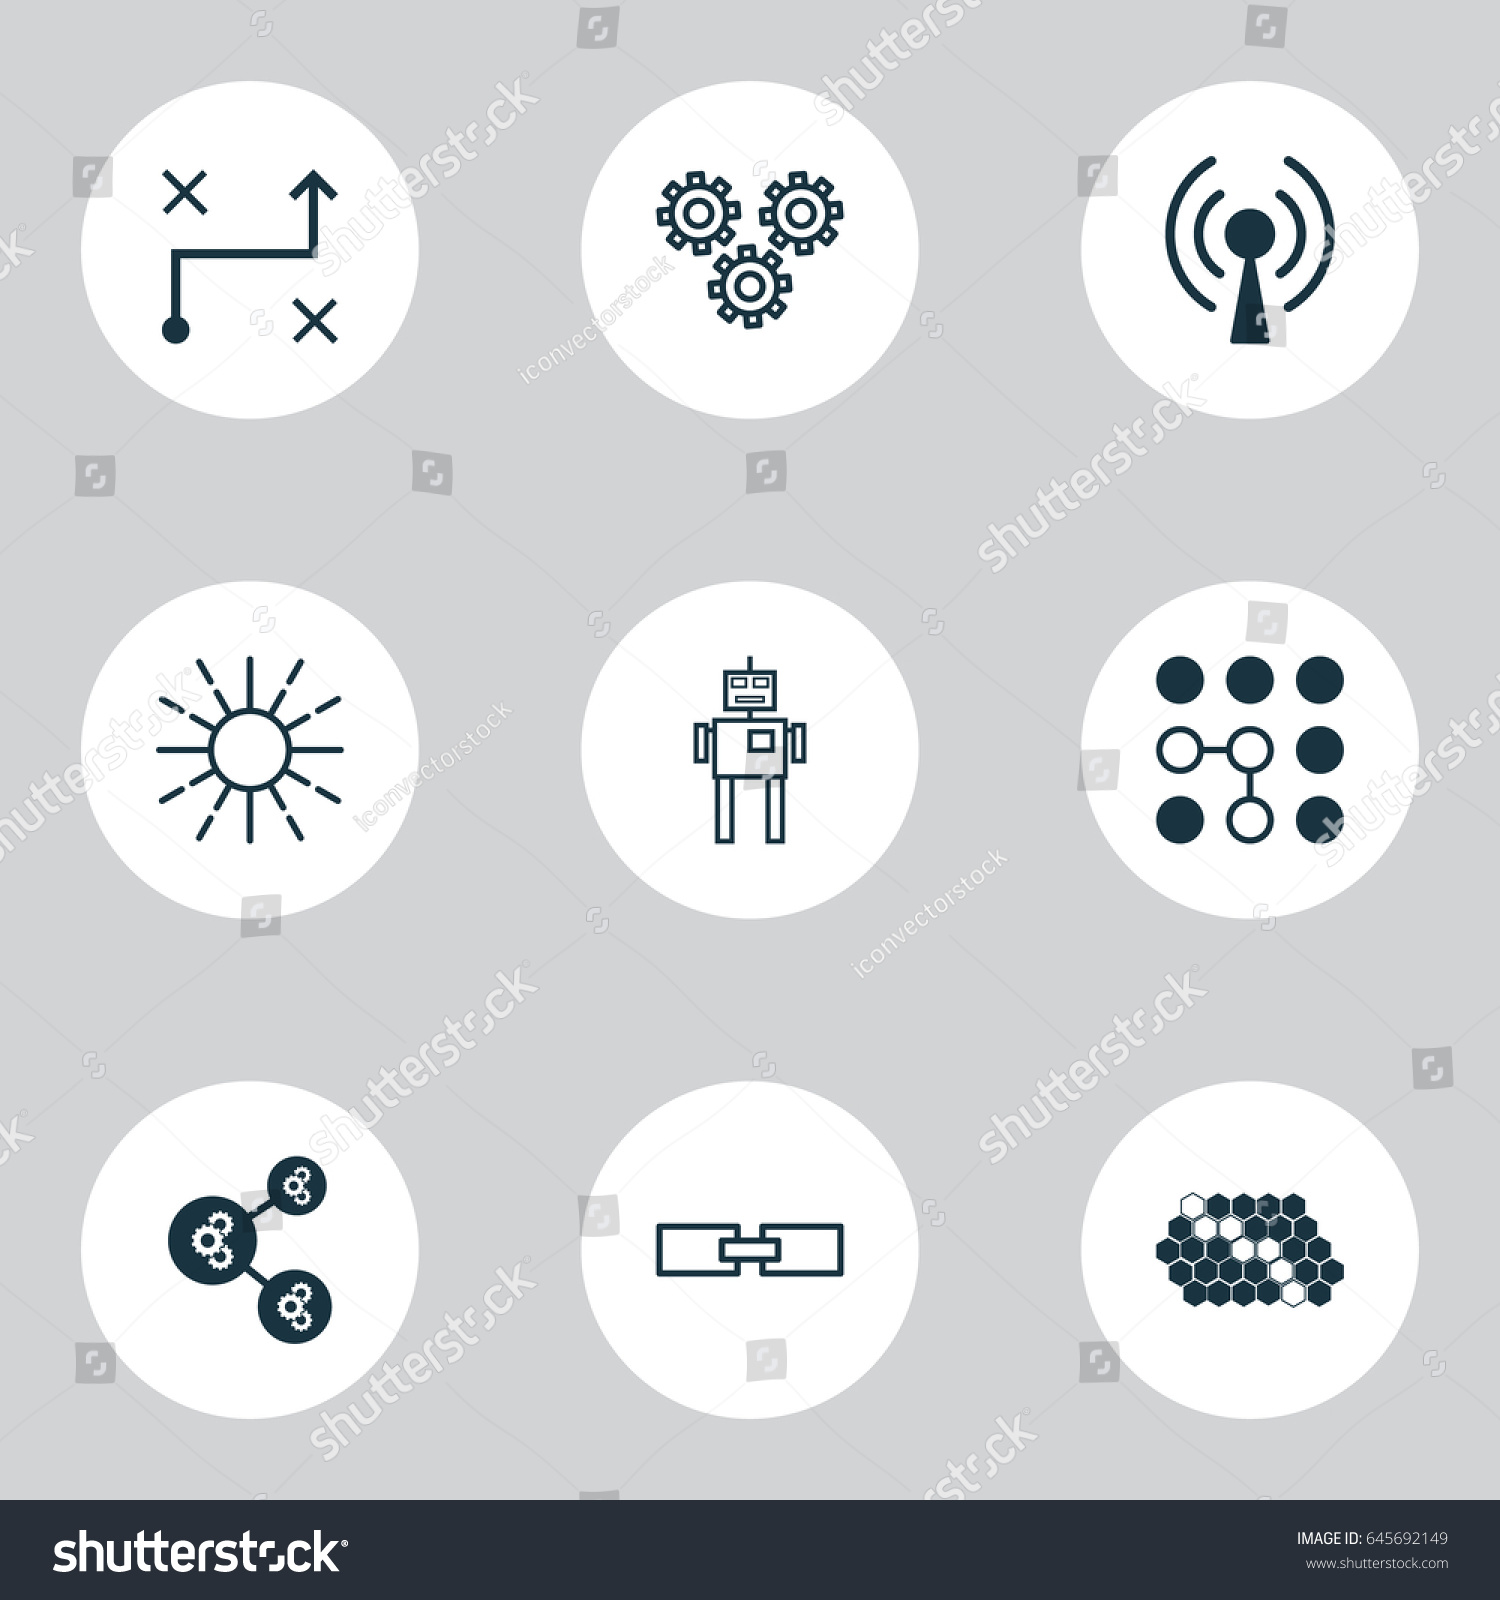 Robotics Icons Set Collection Algorithm Illustration Stock Vector